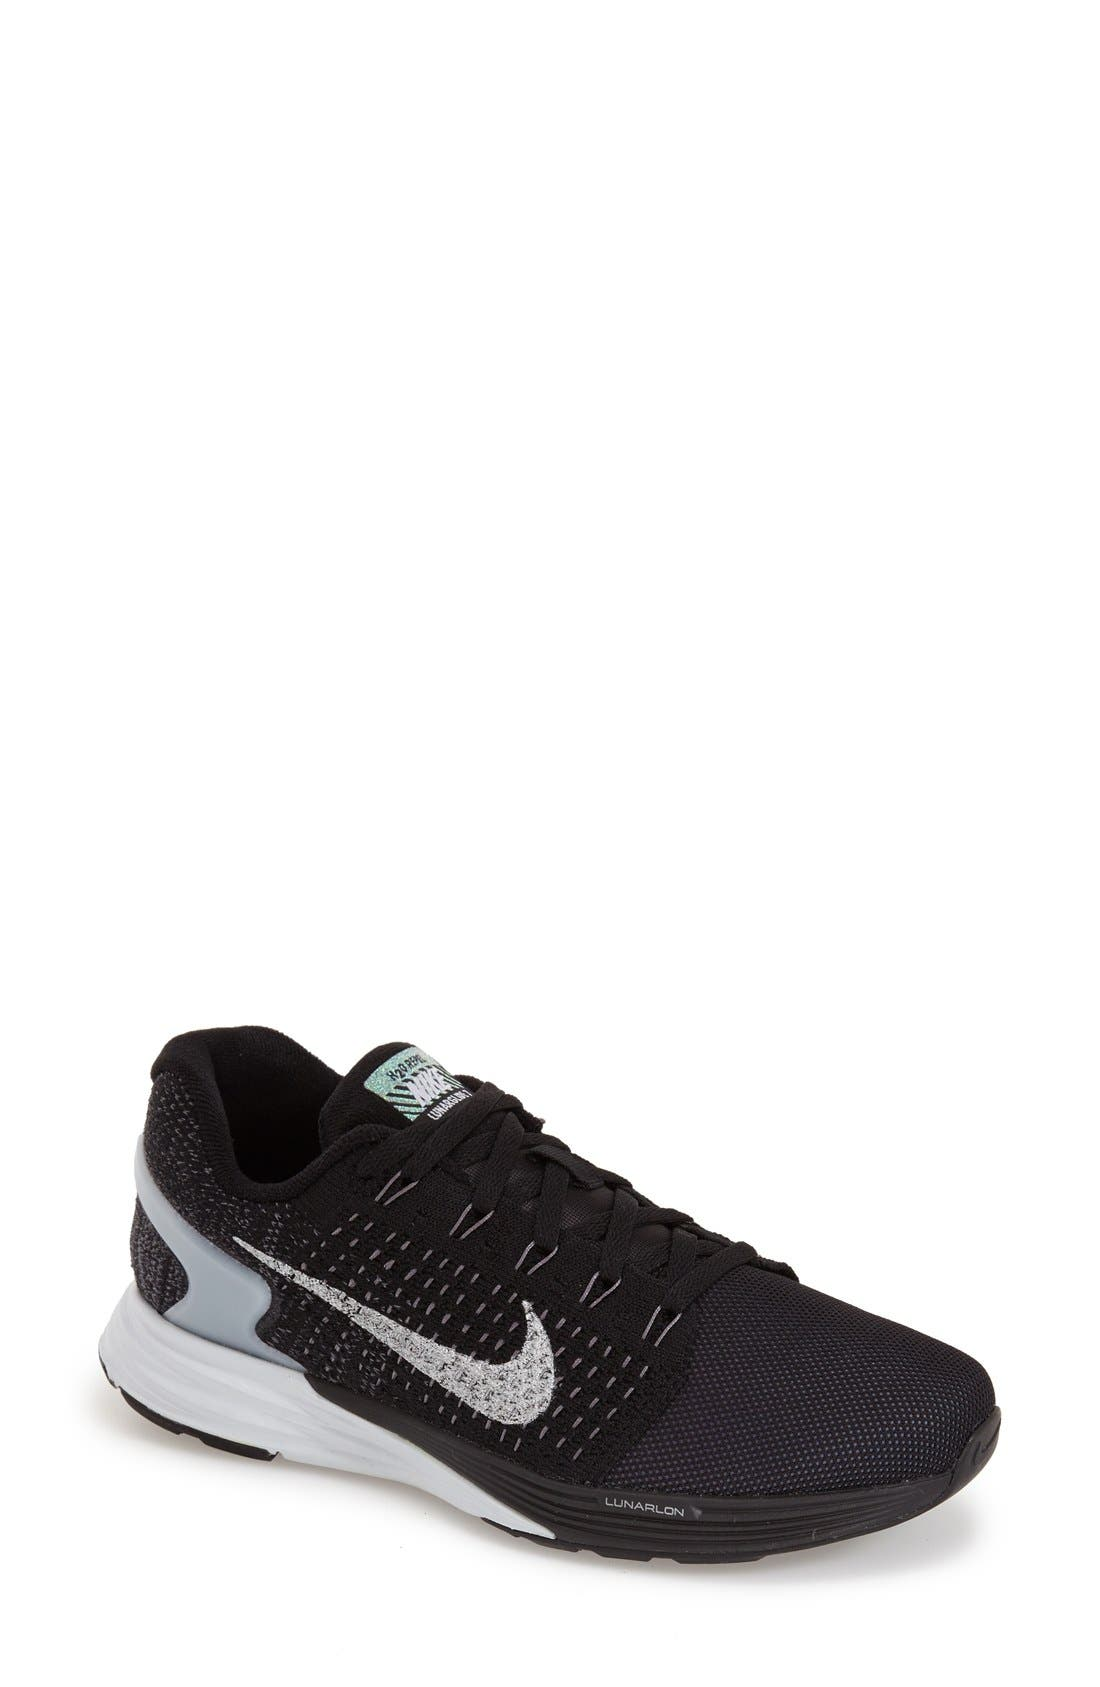 Alternate Image 1 Selected - Nike 'LunarGlide 7' Running Shoe (Women)